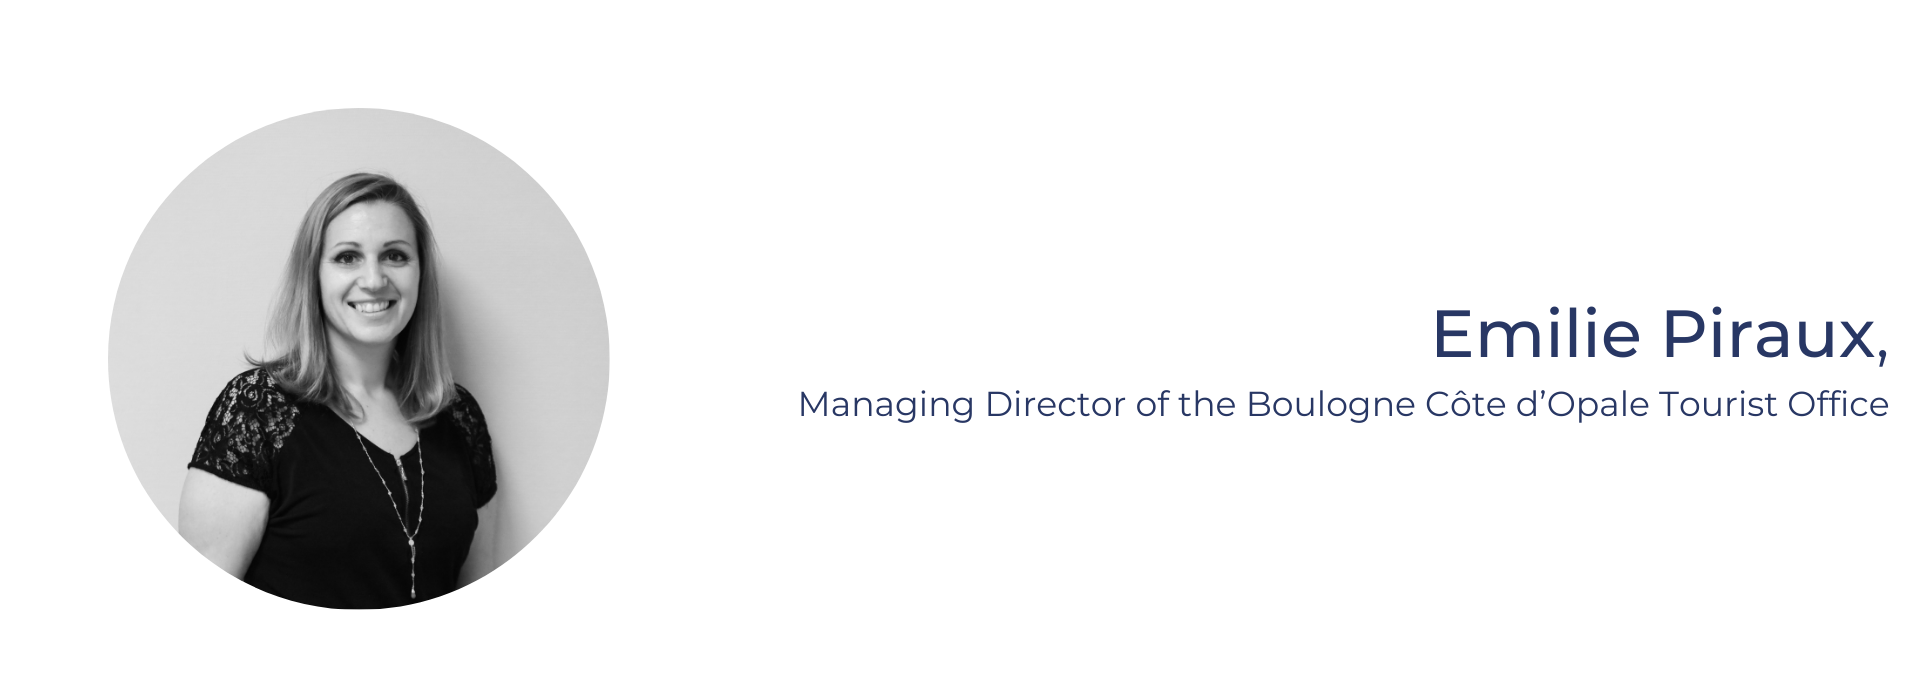 Managing Director of the Boulogne Côte d'Opale Tourist Office